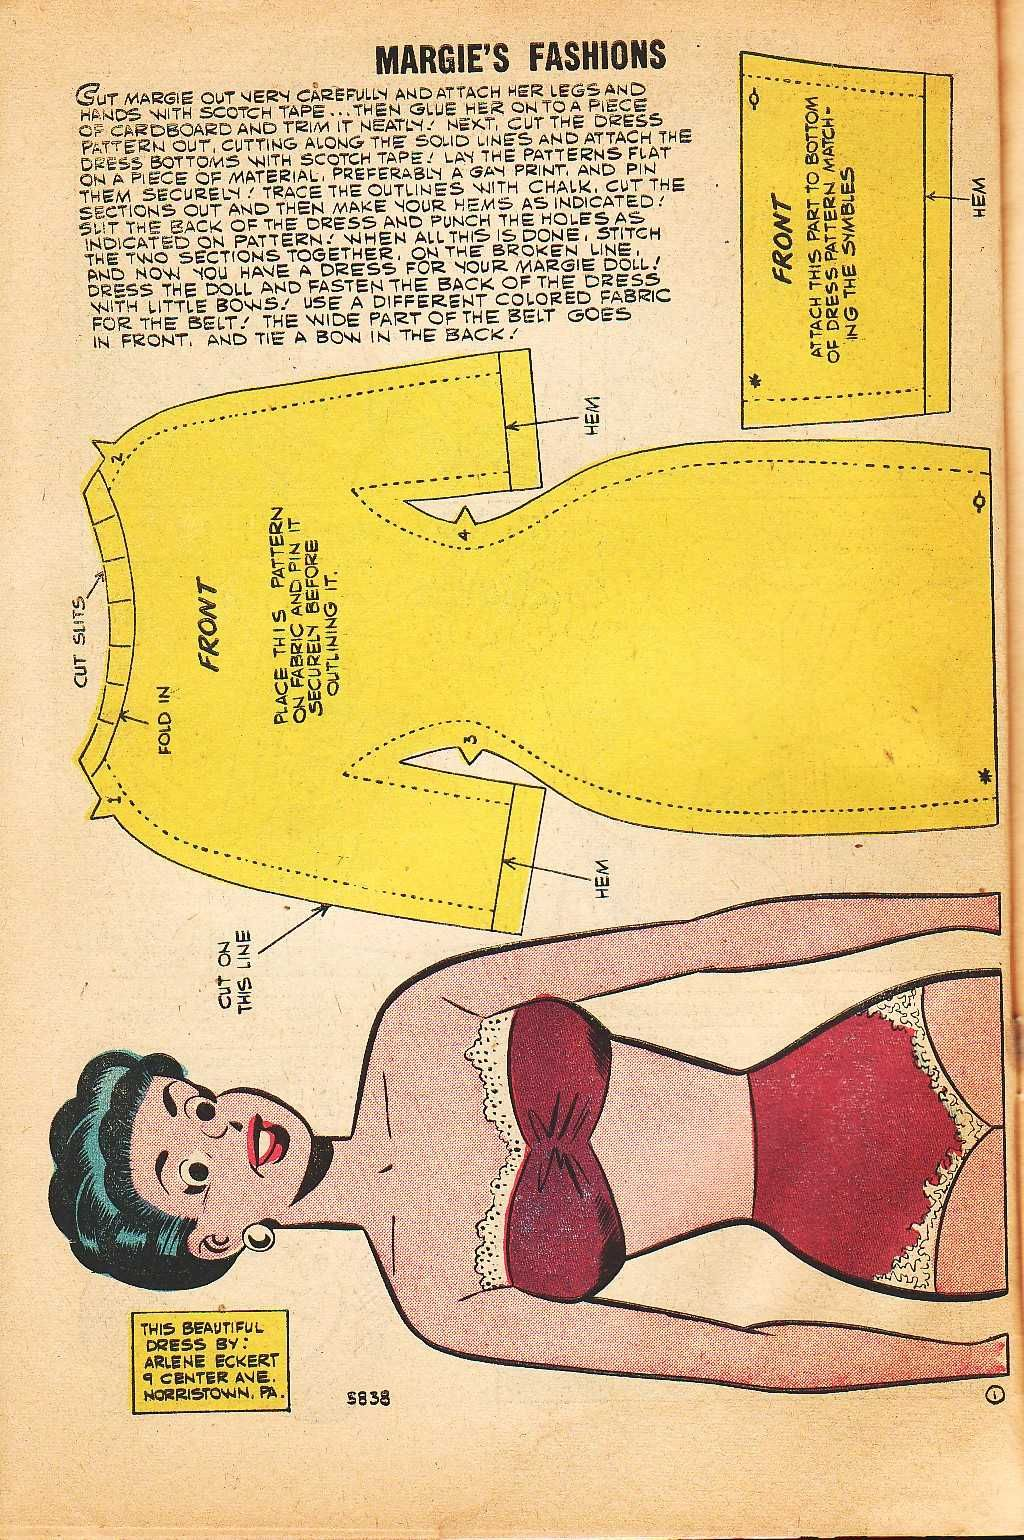 Margie Fashion Paper Doll - a free vintage download printable from Homeschool Commons